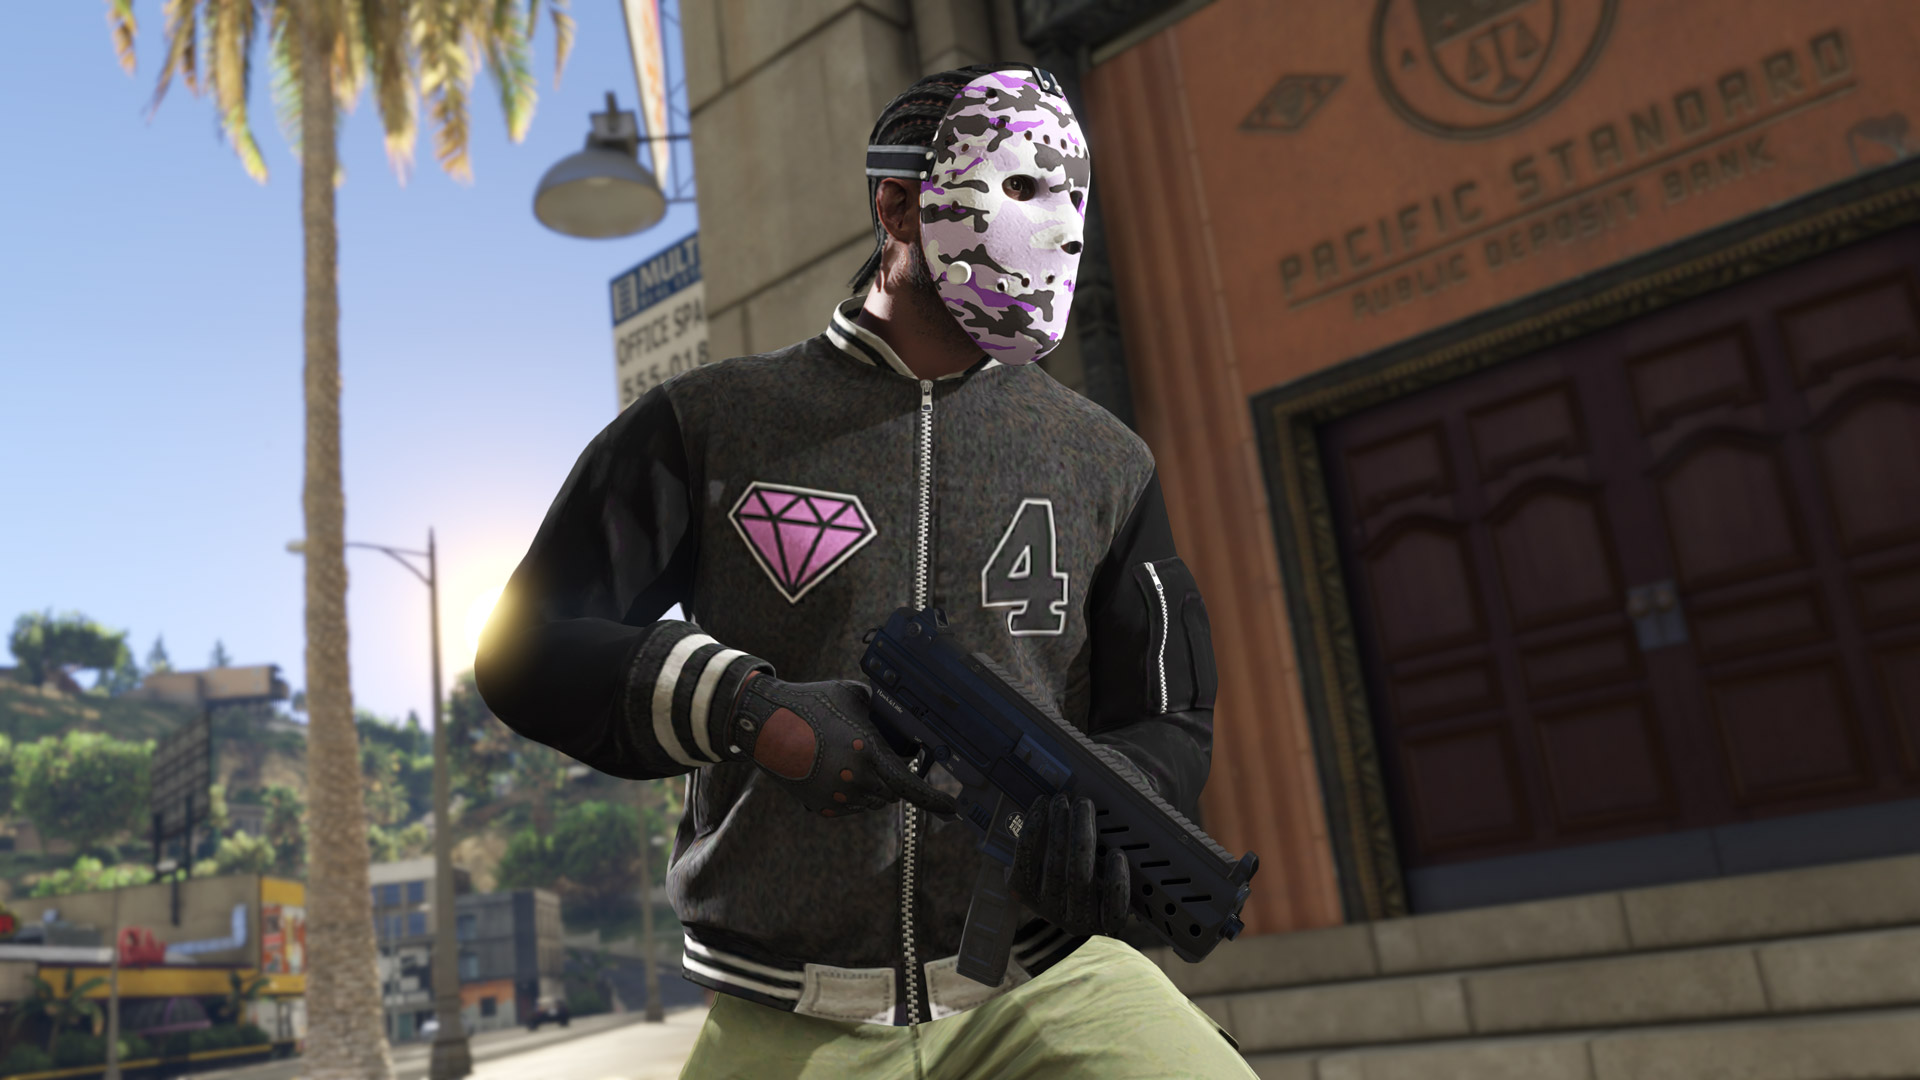 GTA 5 Online: At the start of the Cayo Perico update - gifts, deals & bonuses